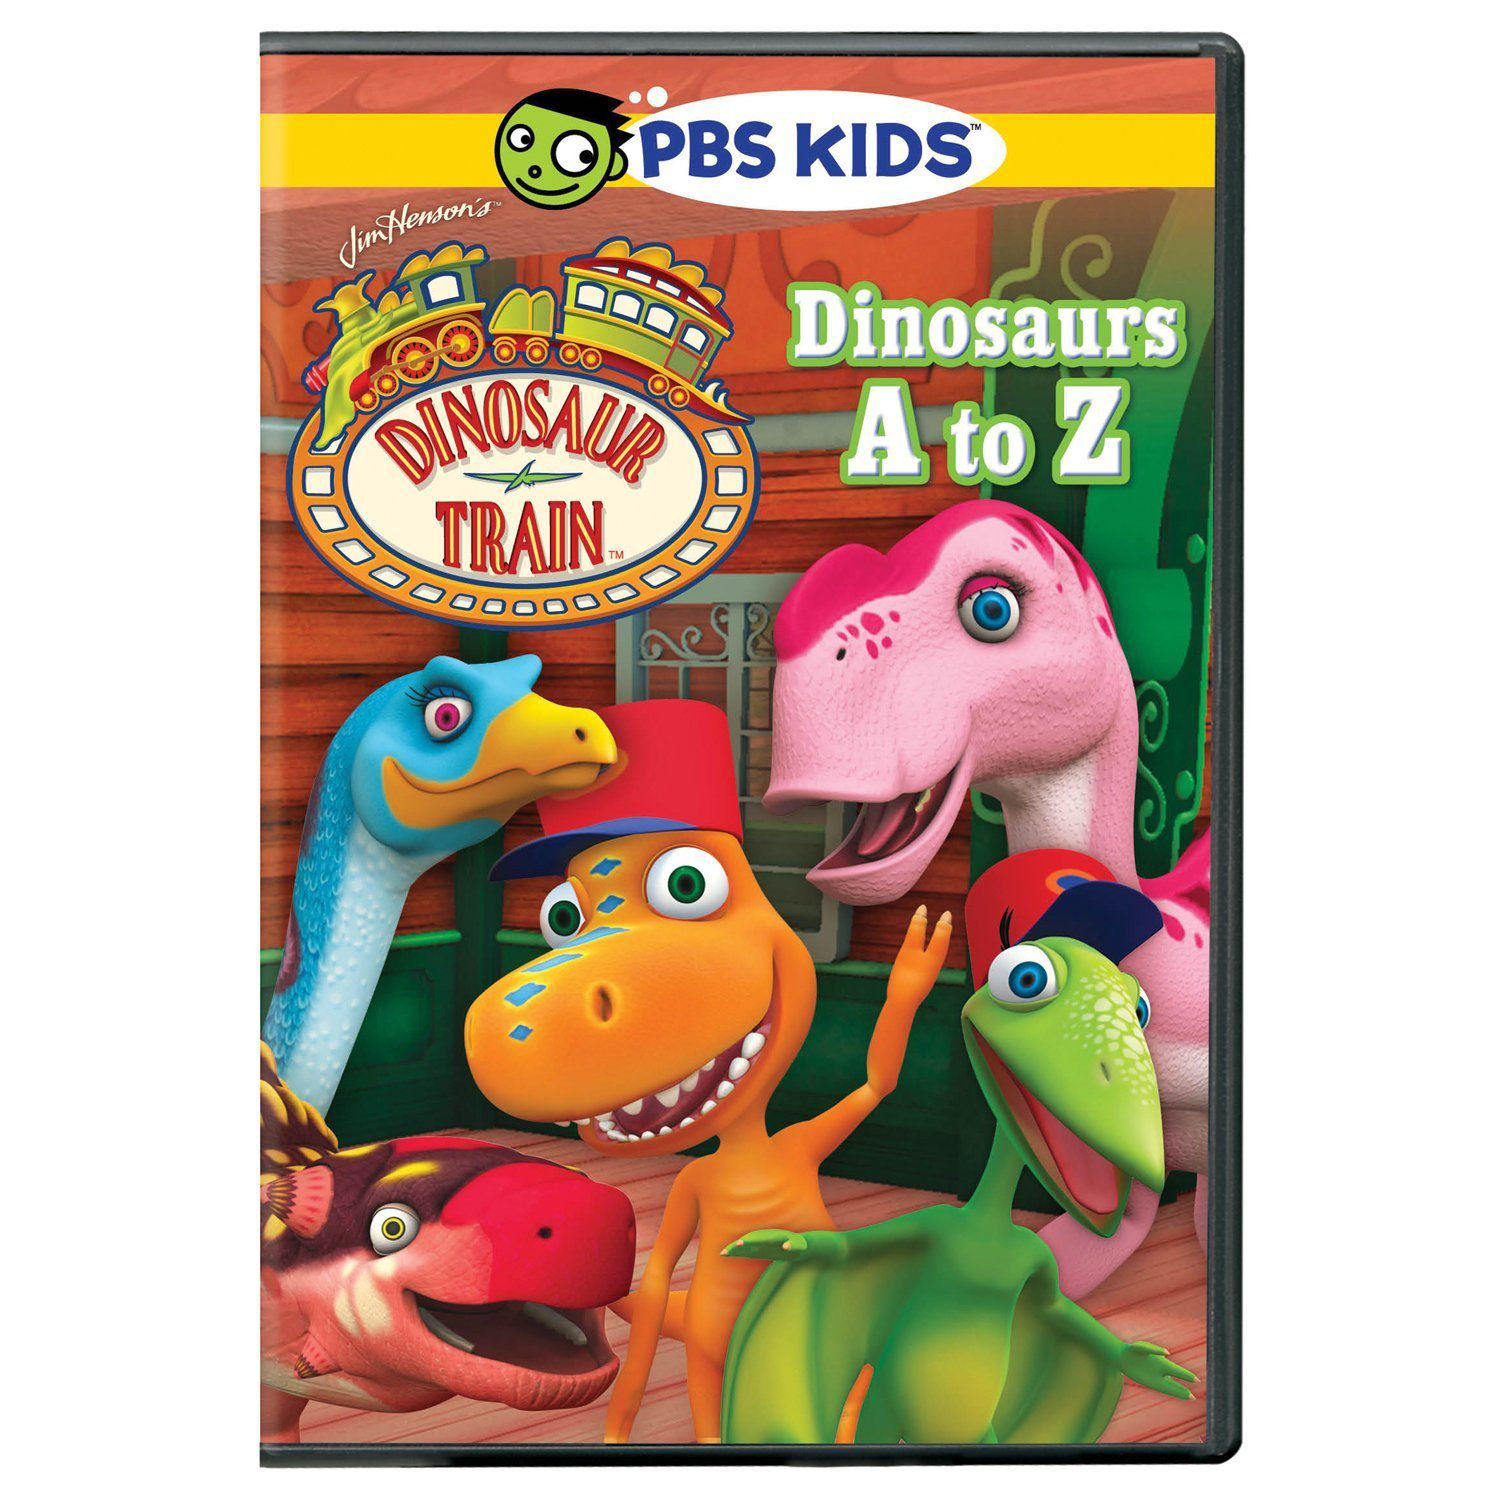 Travel on the Dinosaur Train with Buddy, Mom, and Tiny to gather all the dinosaurs in the